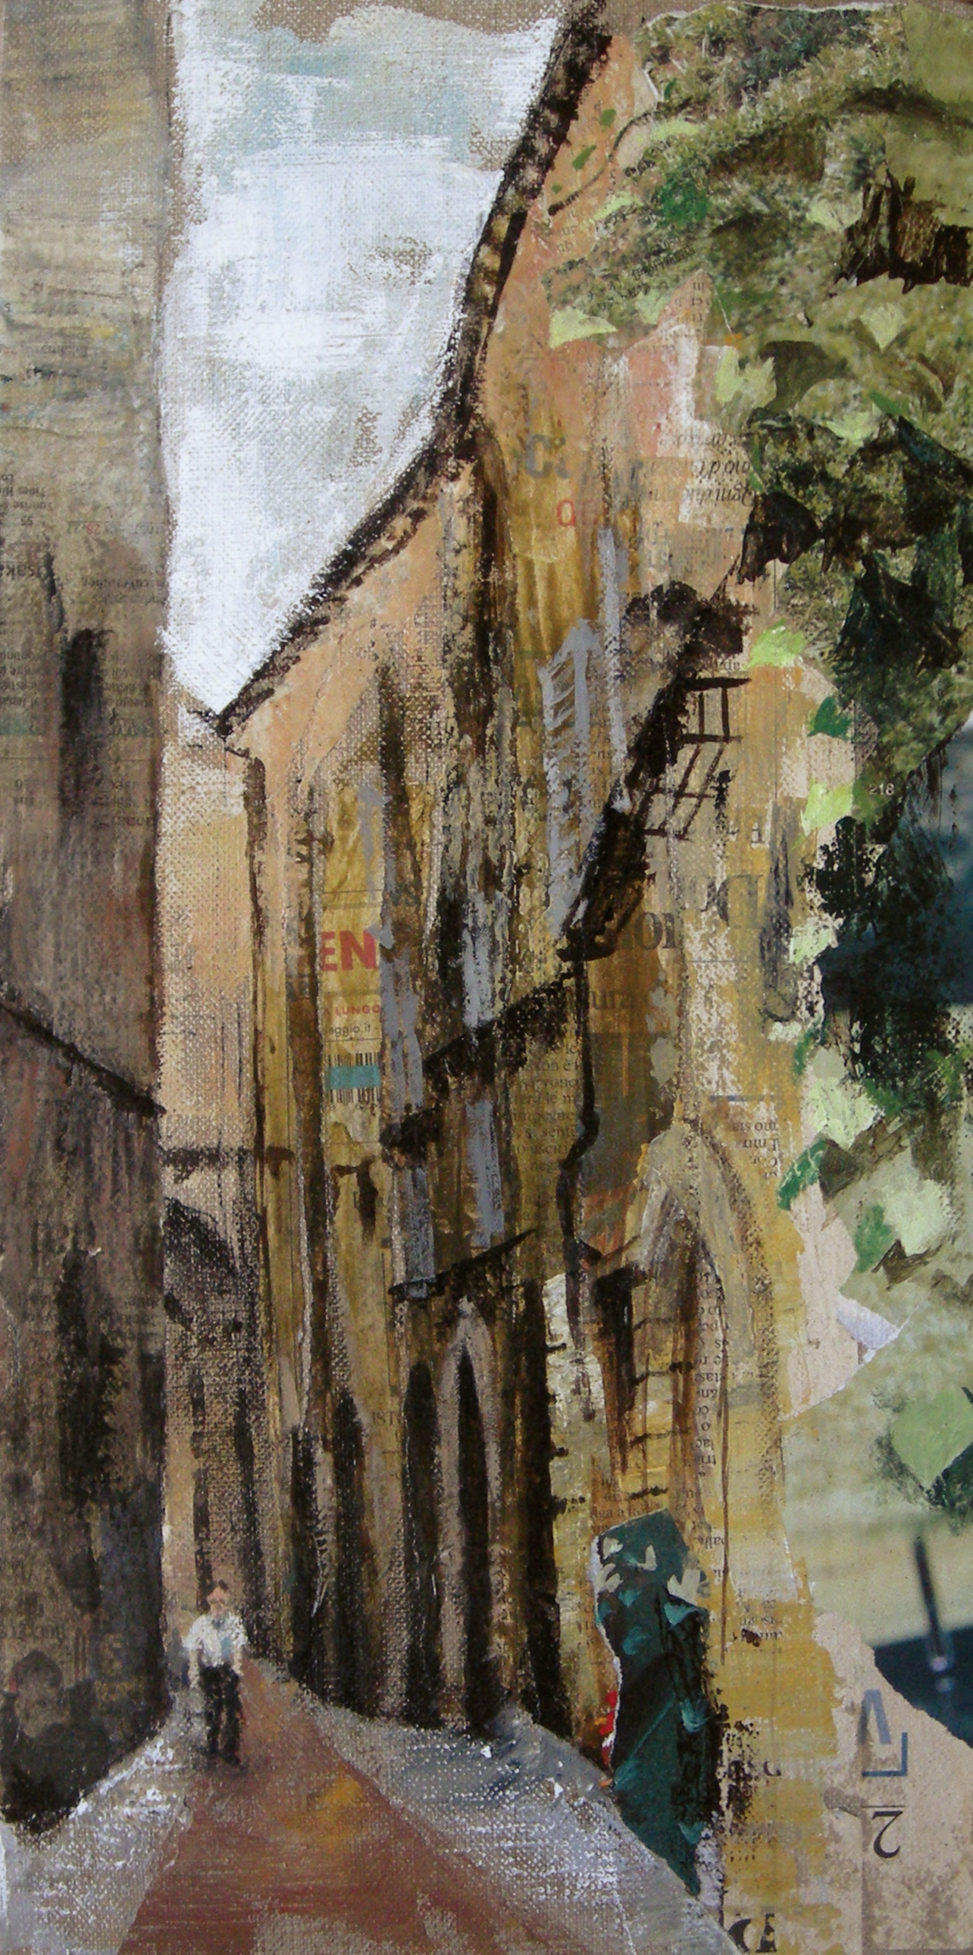 Italy street painted by naomorigo